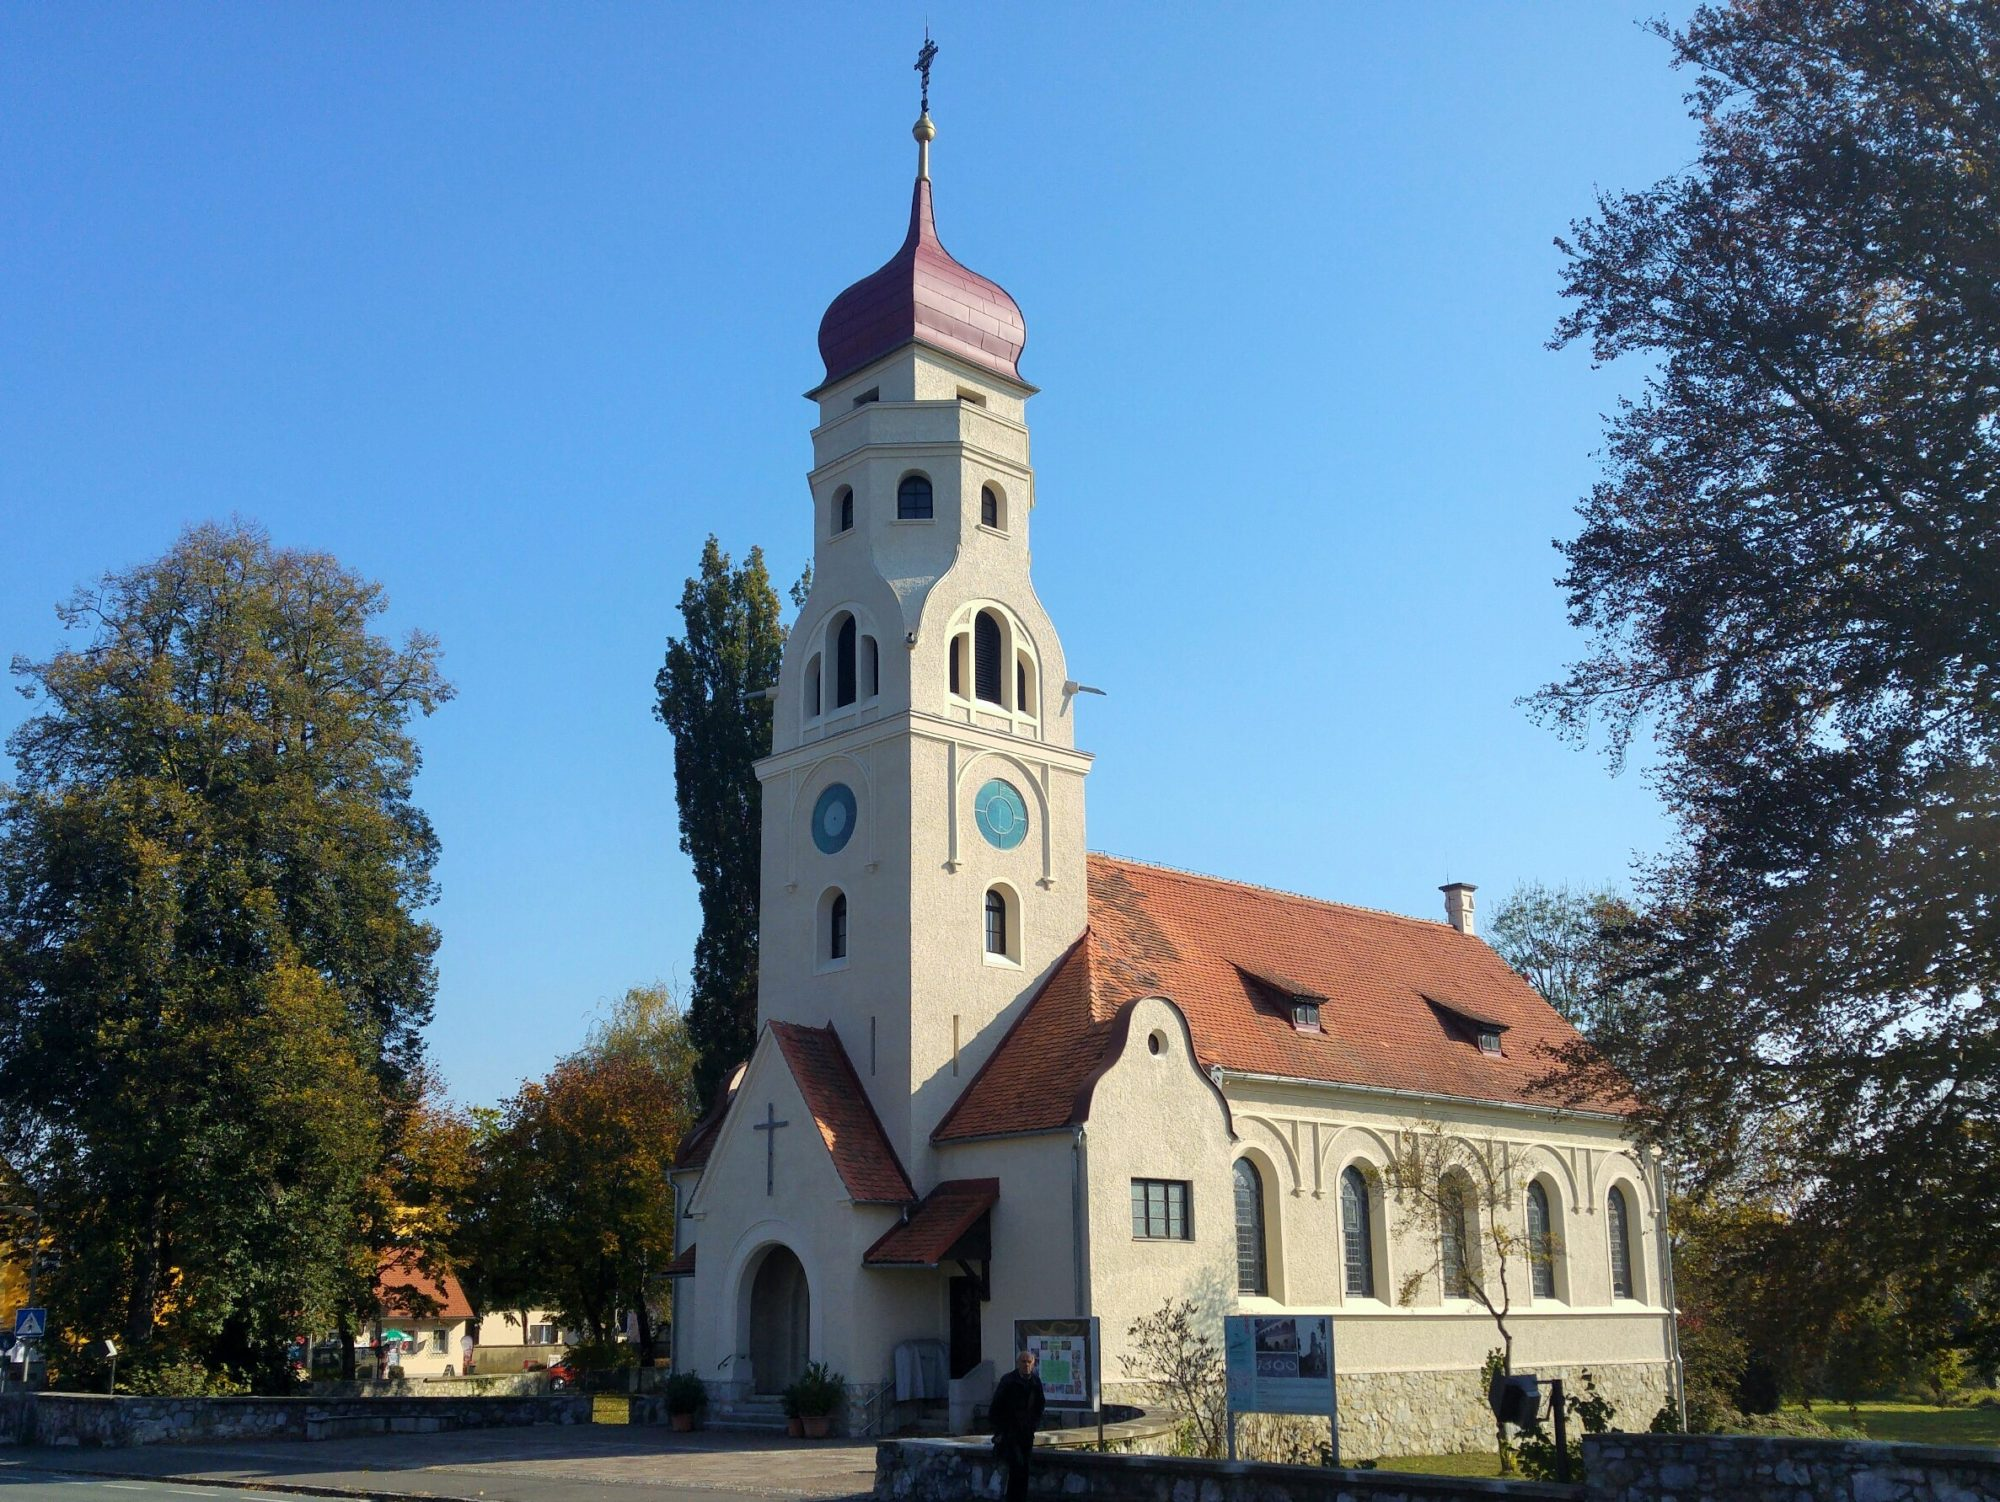 Evangelisch in Bad Radkersburg